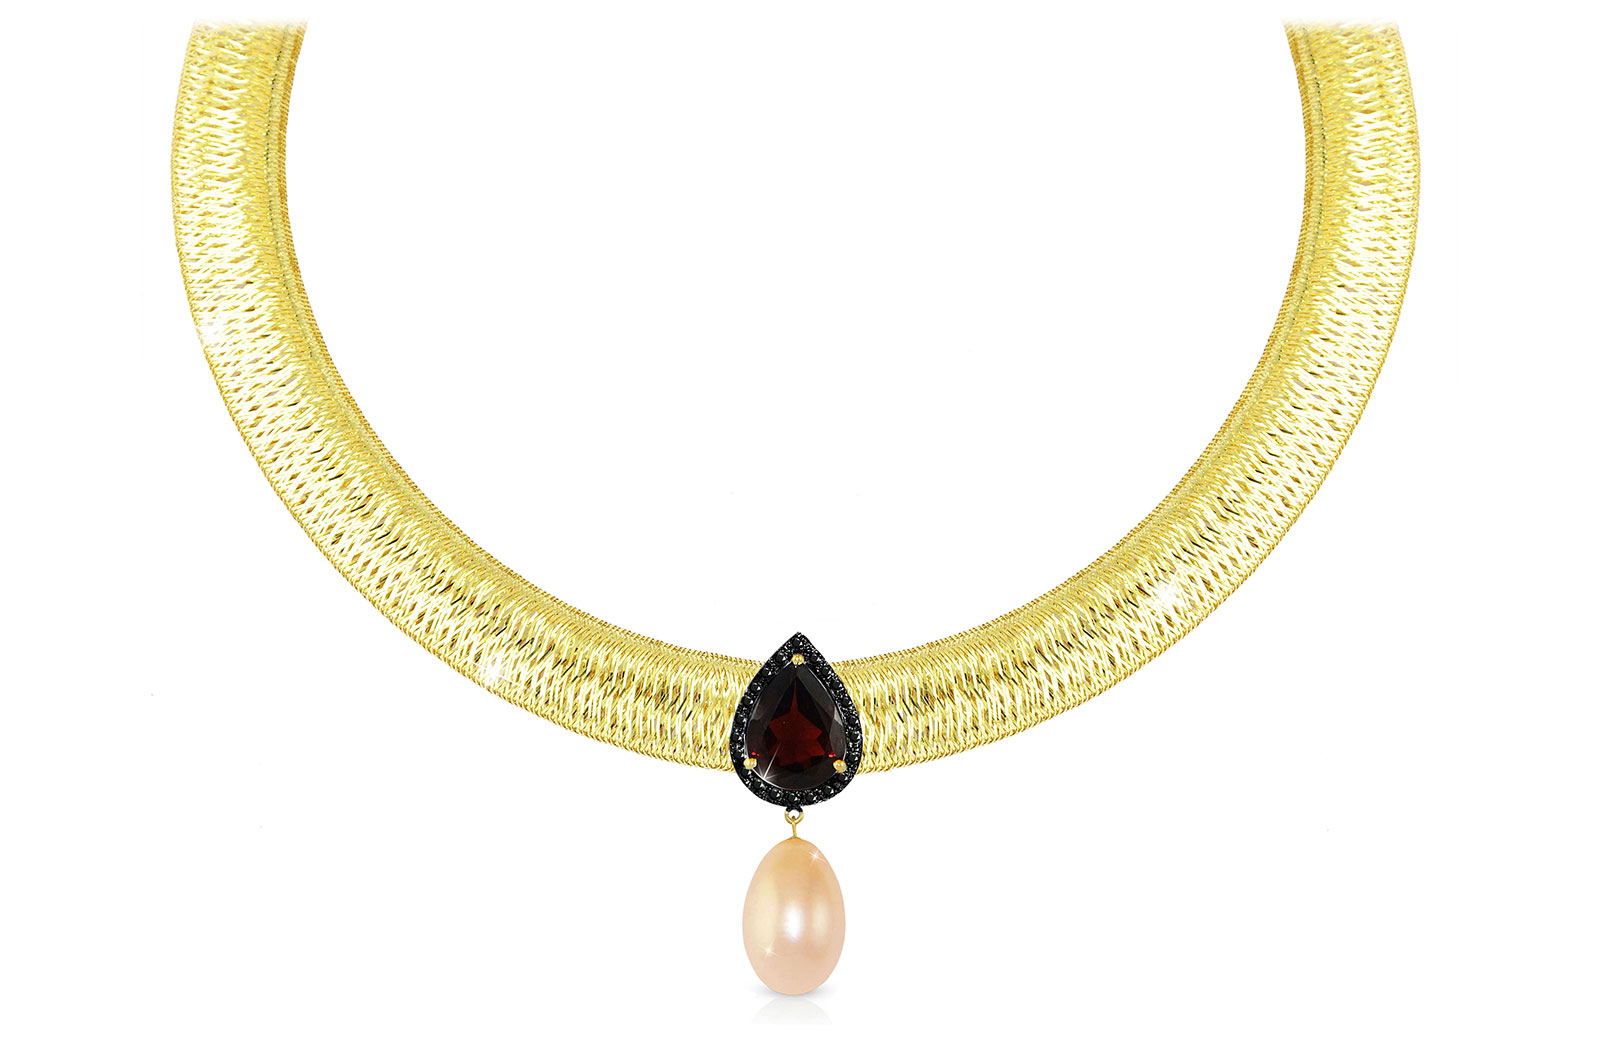 Vera Perla 18K Gold 0.12ct  Black Diamonds, Garnet and 13mm Pink Pearl  Necklace